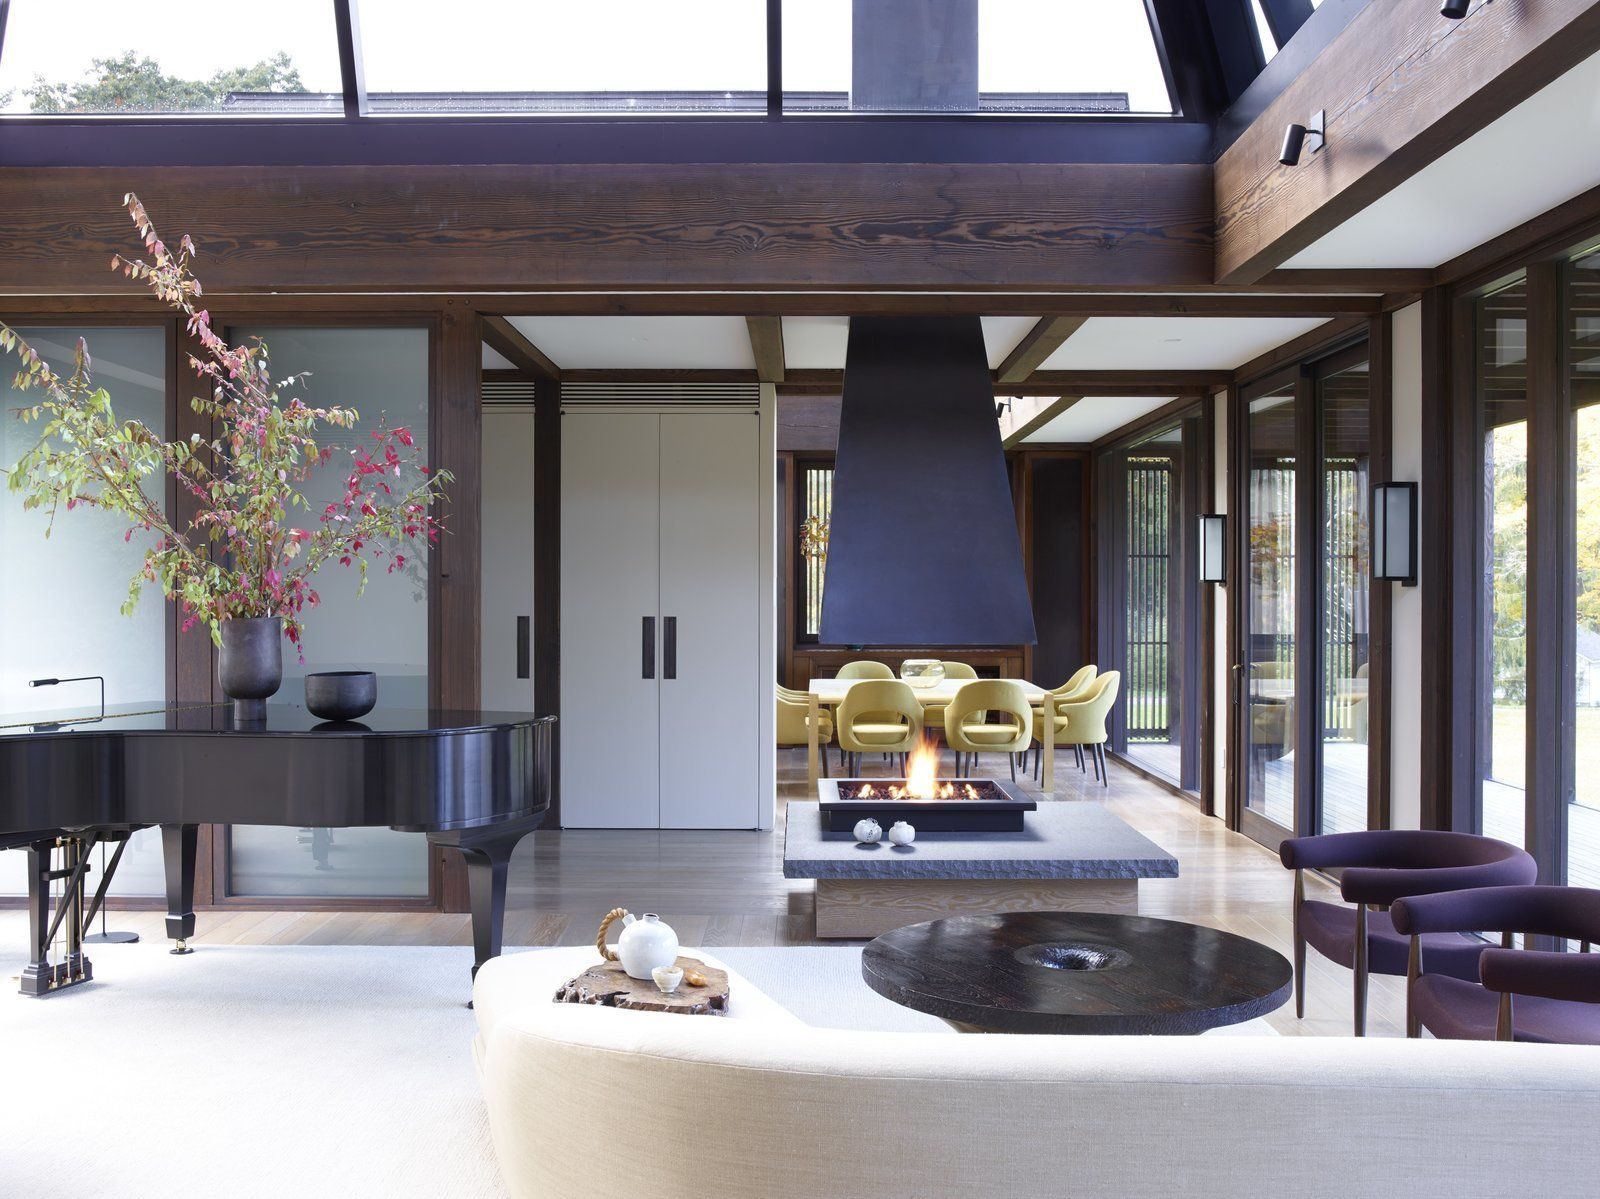 Best Kitchen Gallery: Photo 12 Of 21 In 10 Zen Homes That Ch Ion Japanese Design of Fashion Designer Homes  on rachelxblog.com